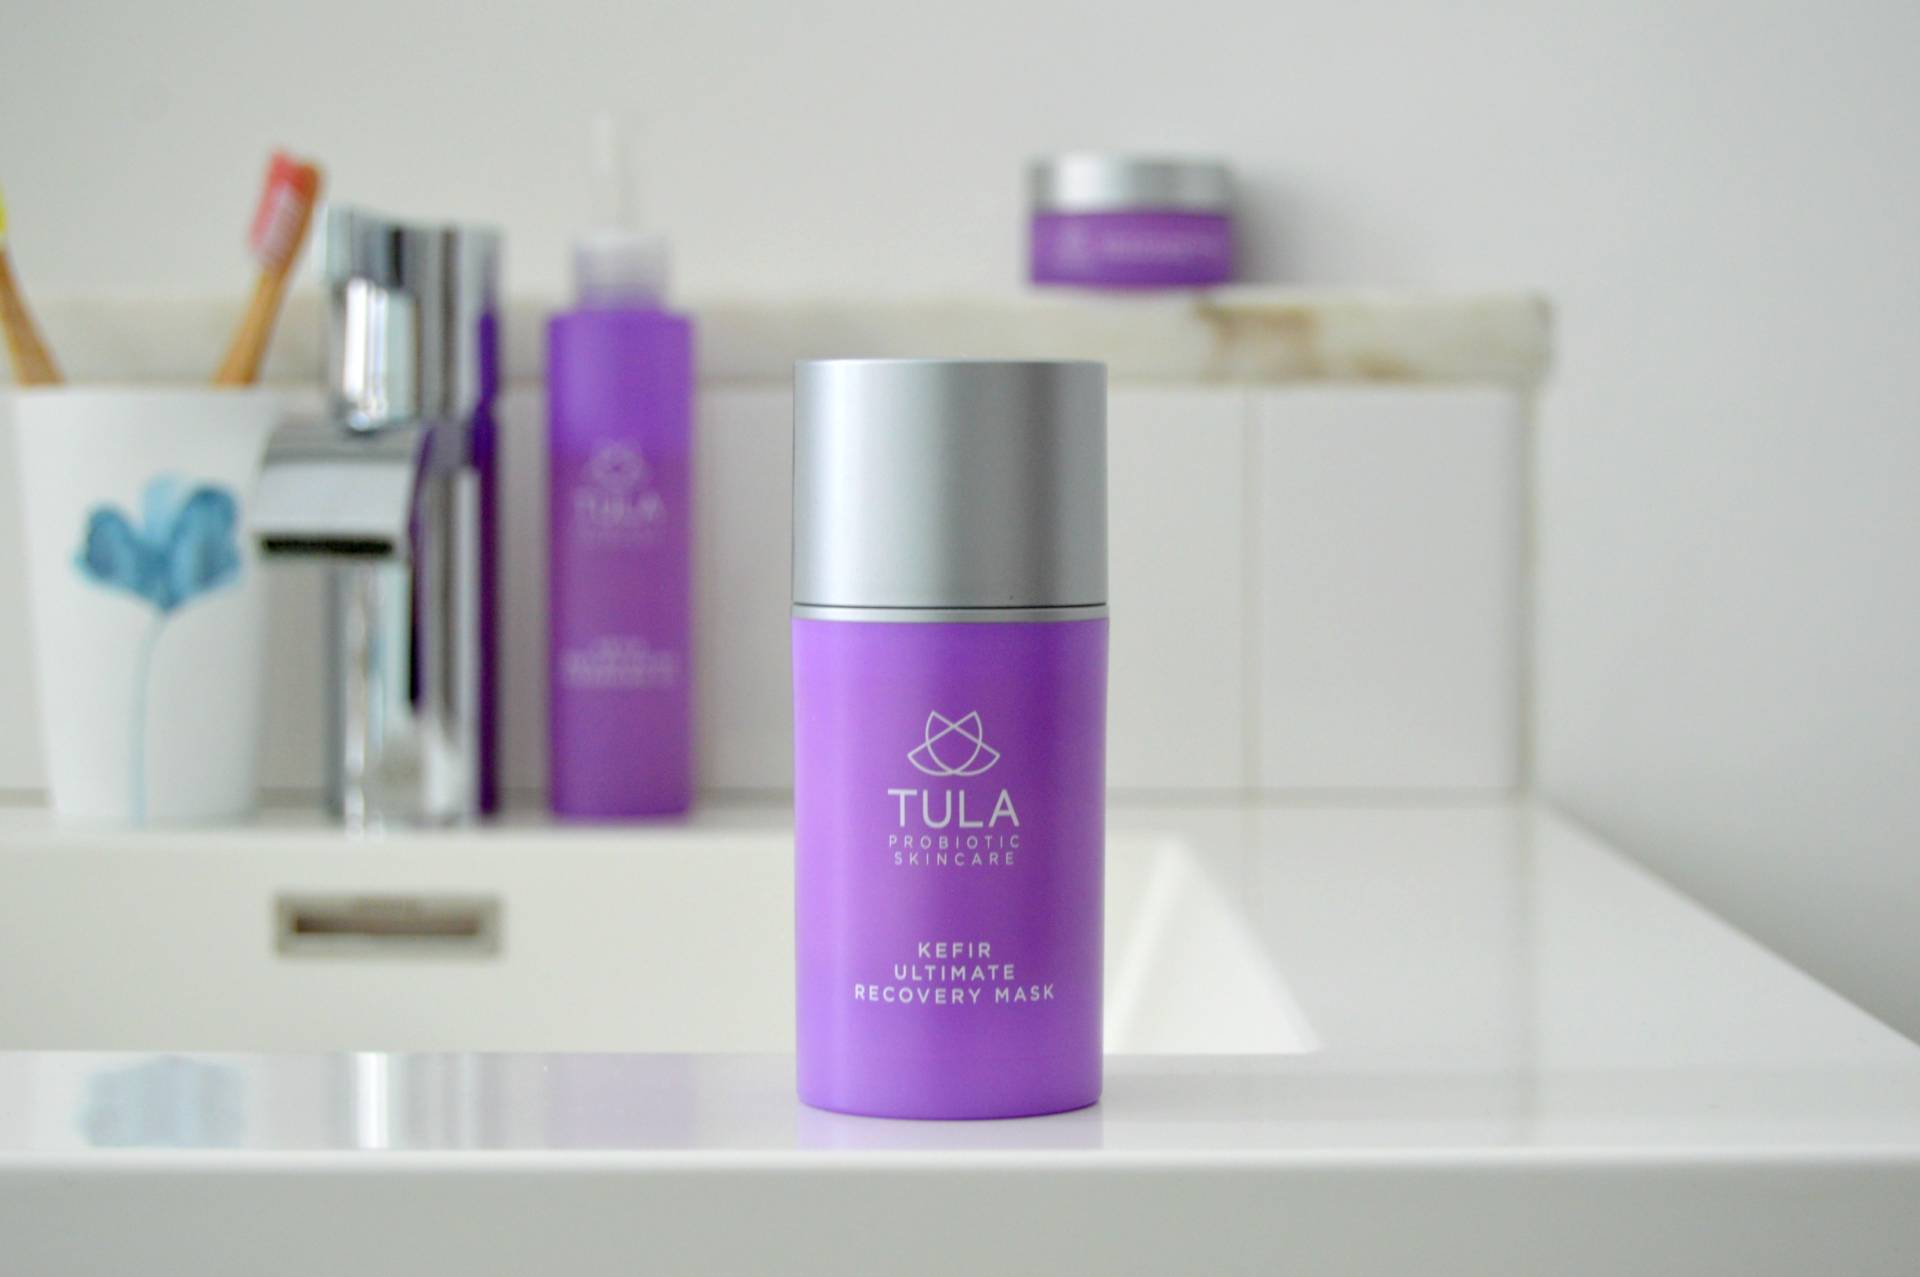 TULA Kefir Ultimate Recovery Mask & Exclusive 20% off Promo